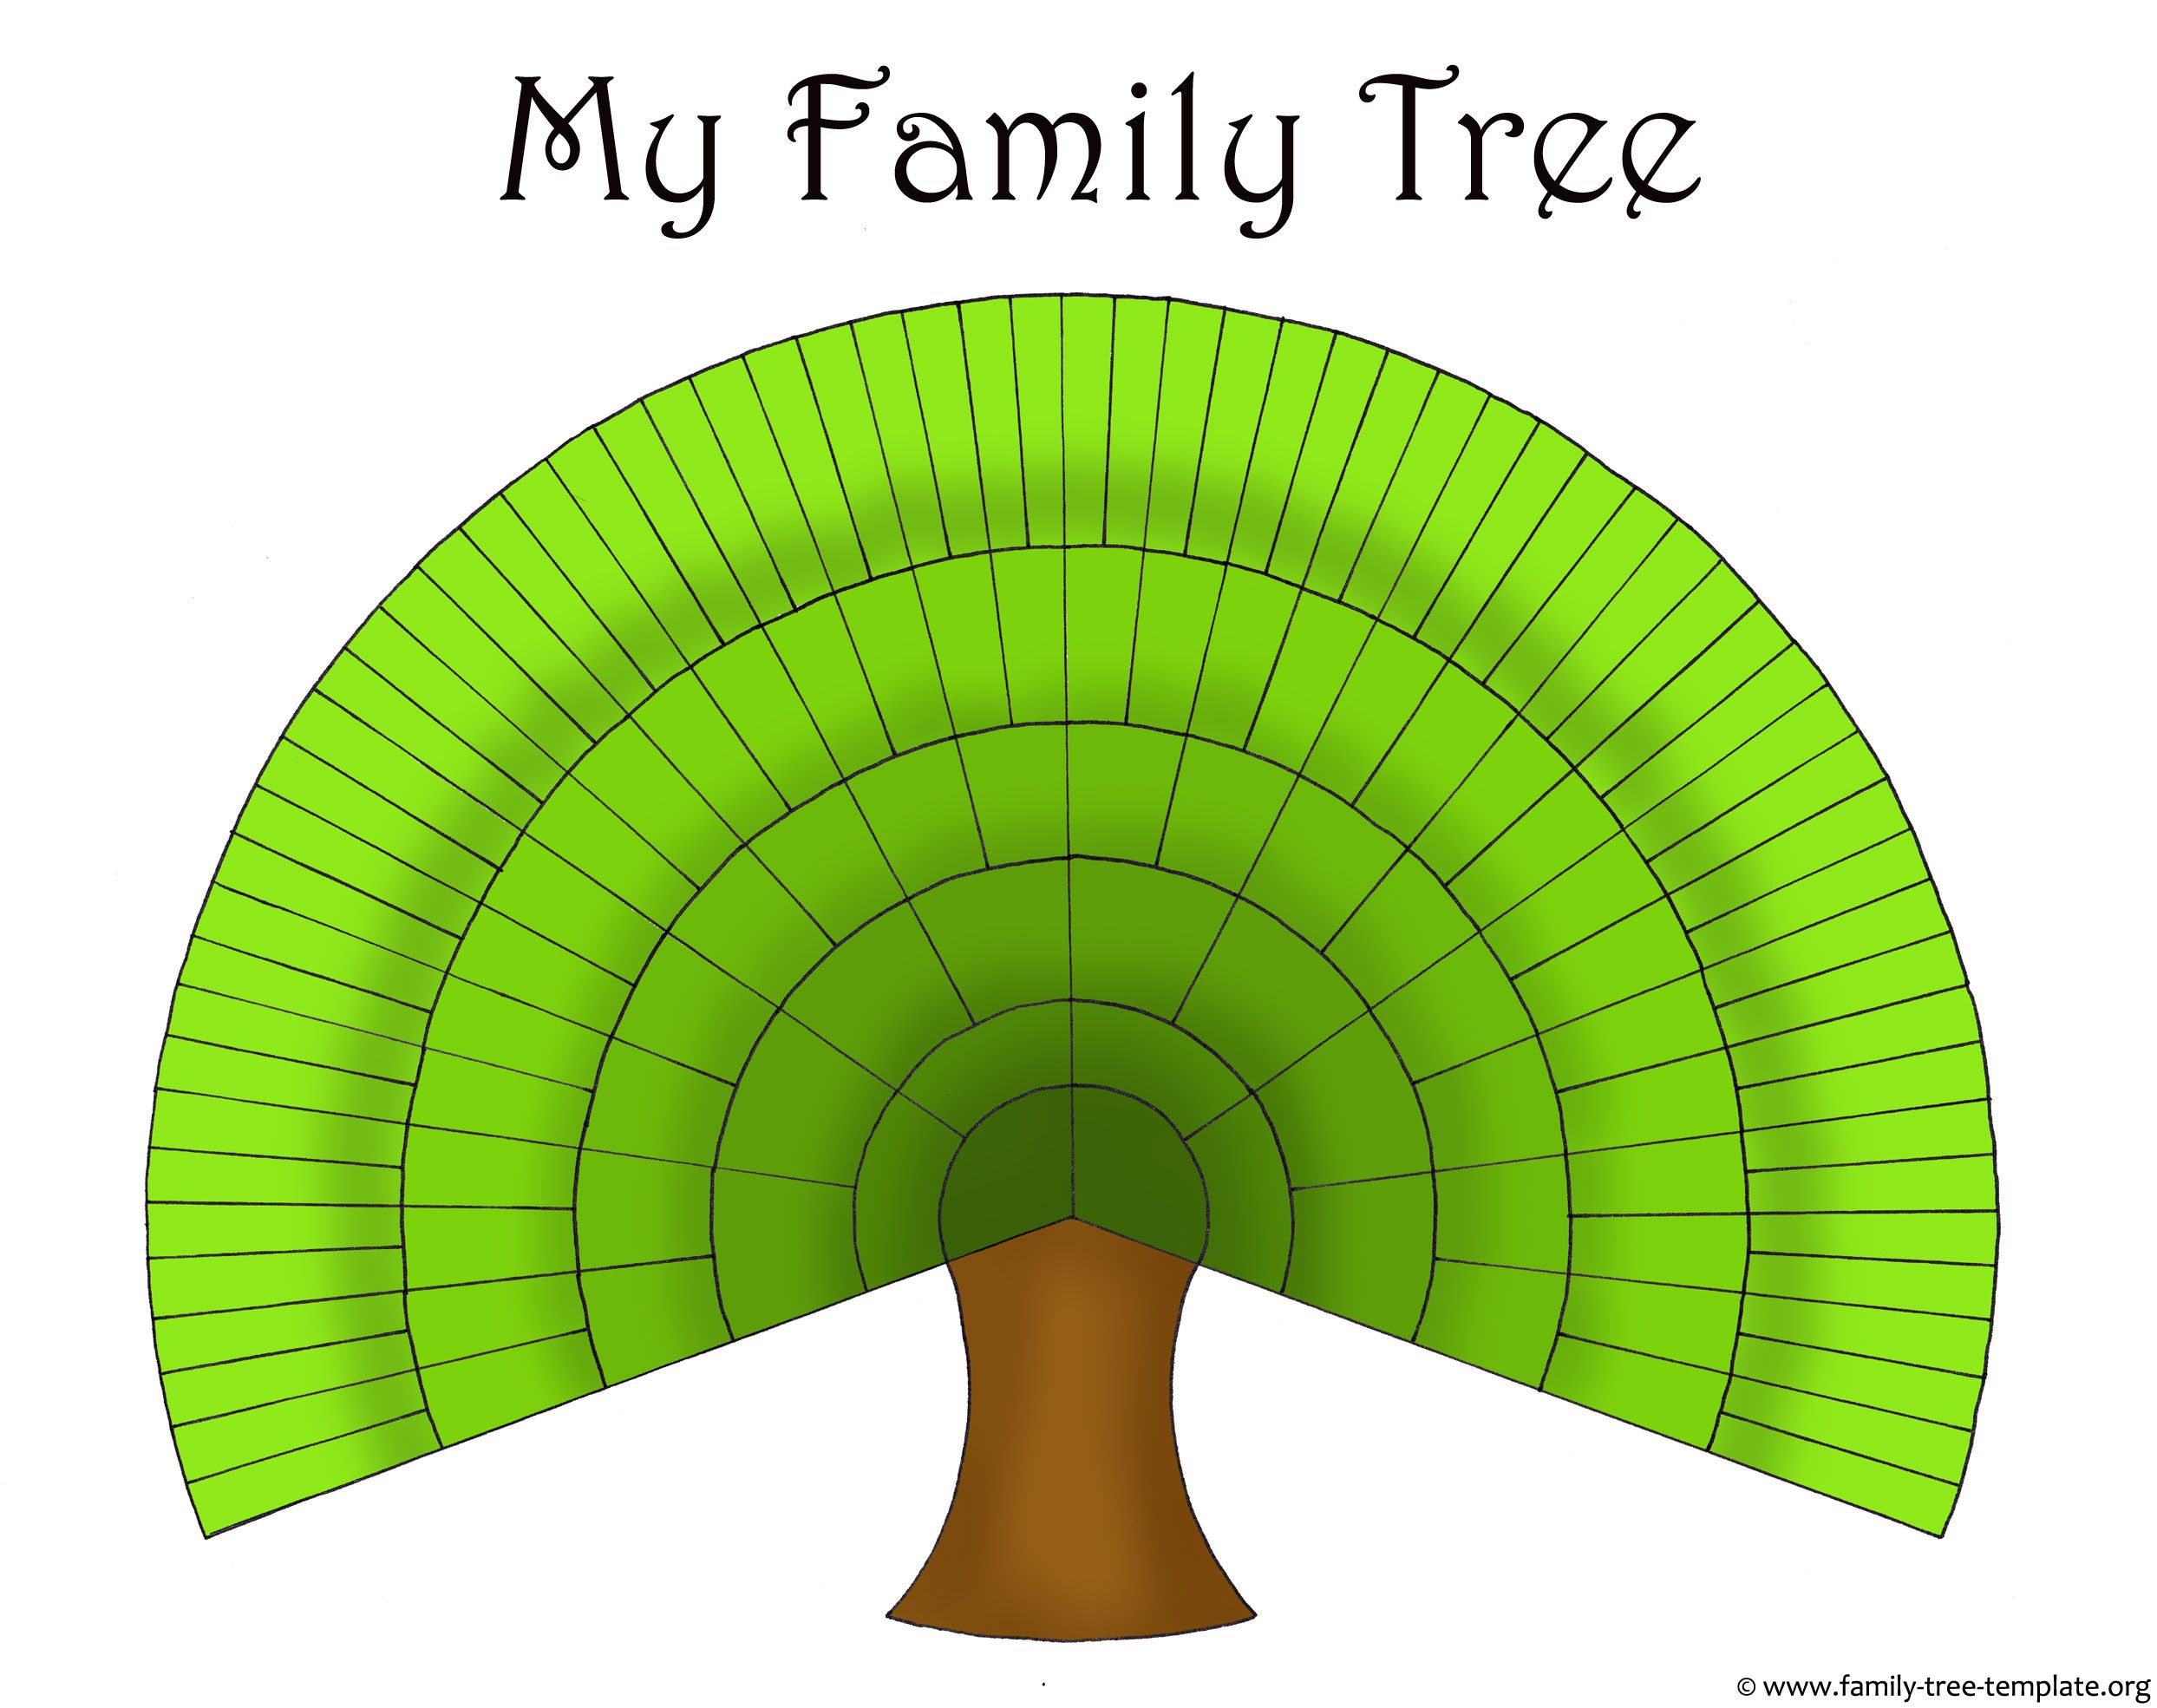 blank family trees templates and free genealogy graphics family